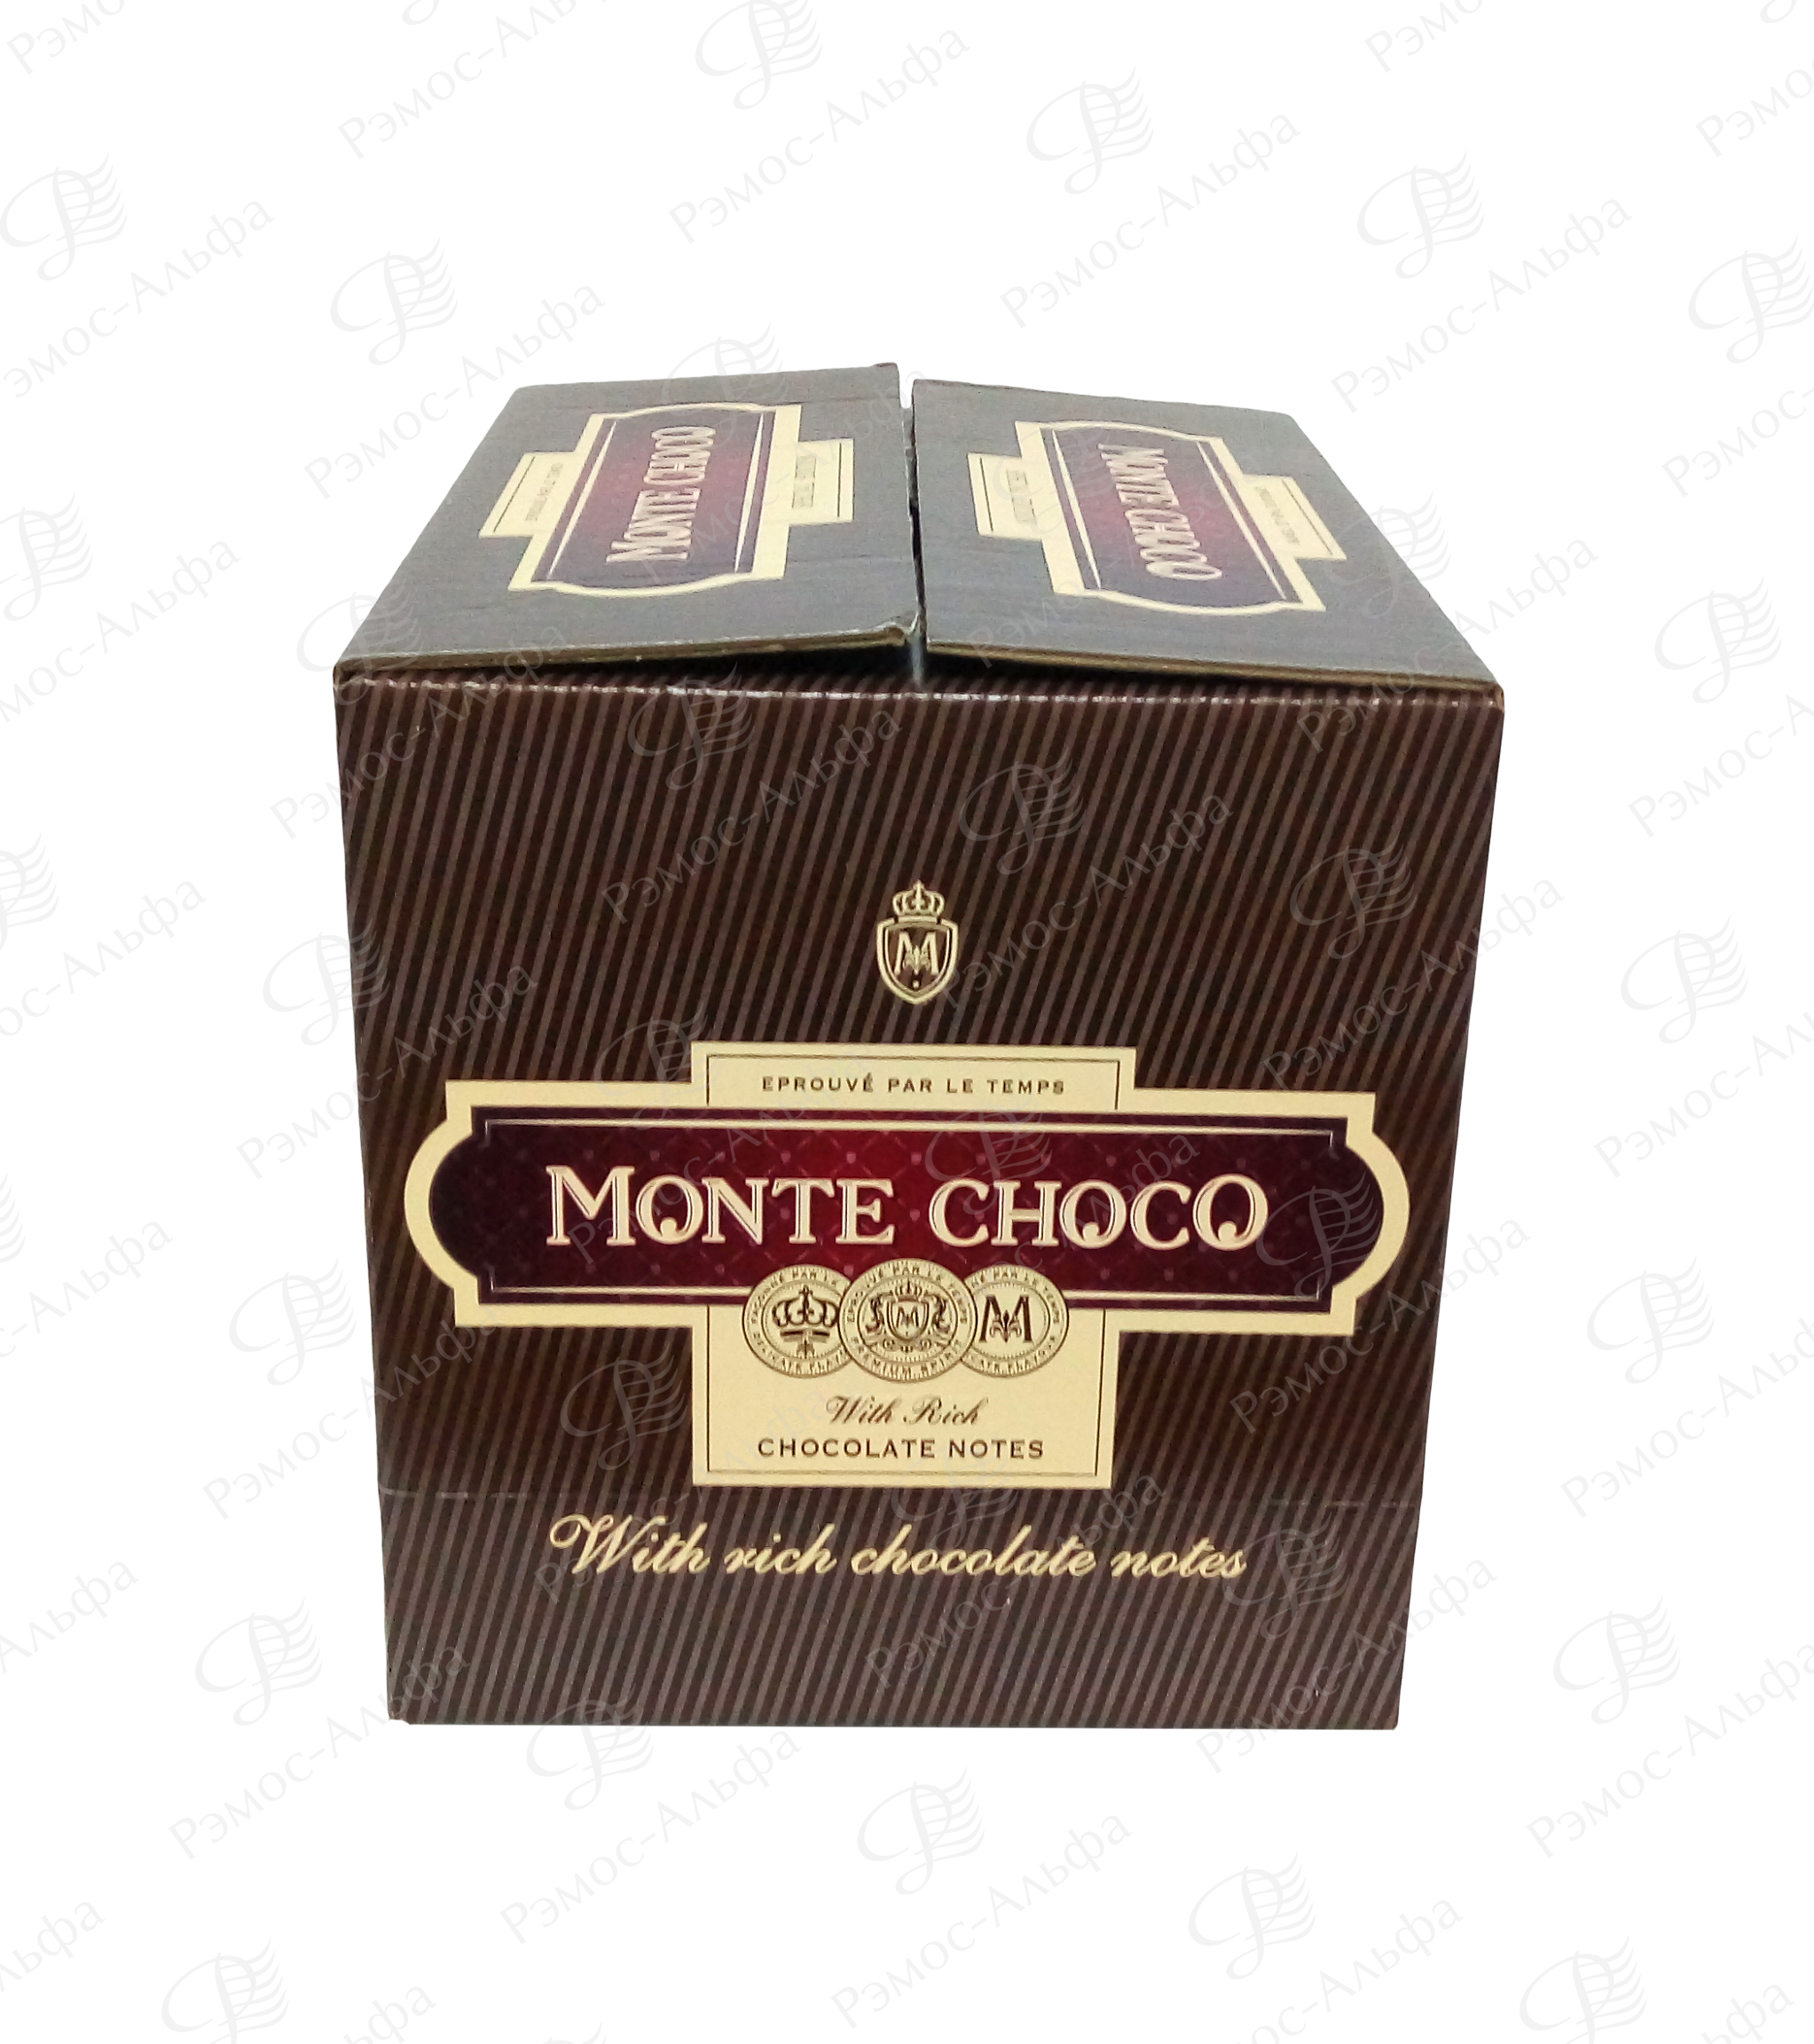 вз Monte Choco.png